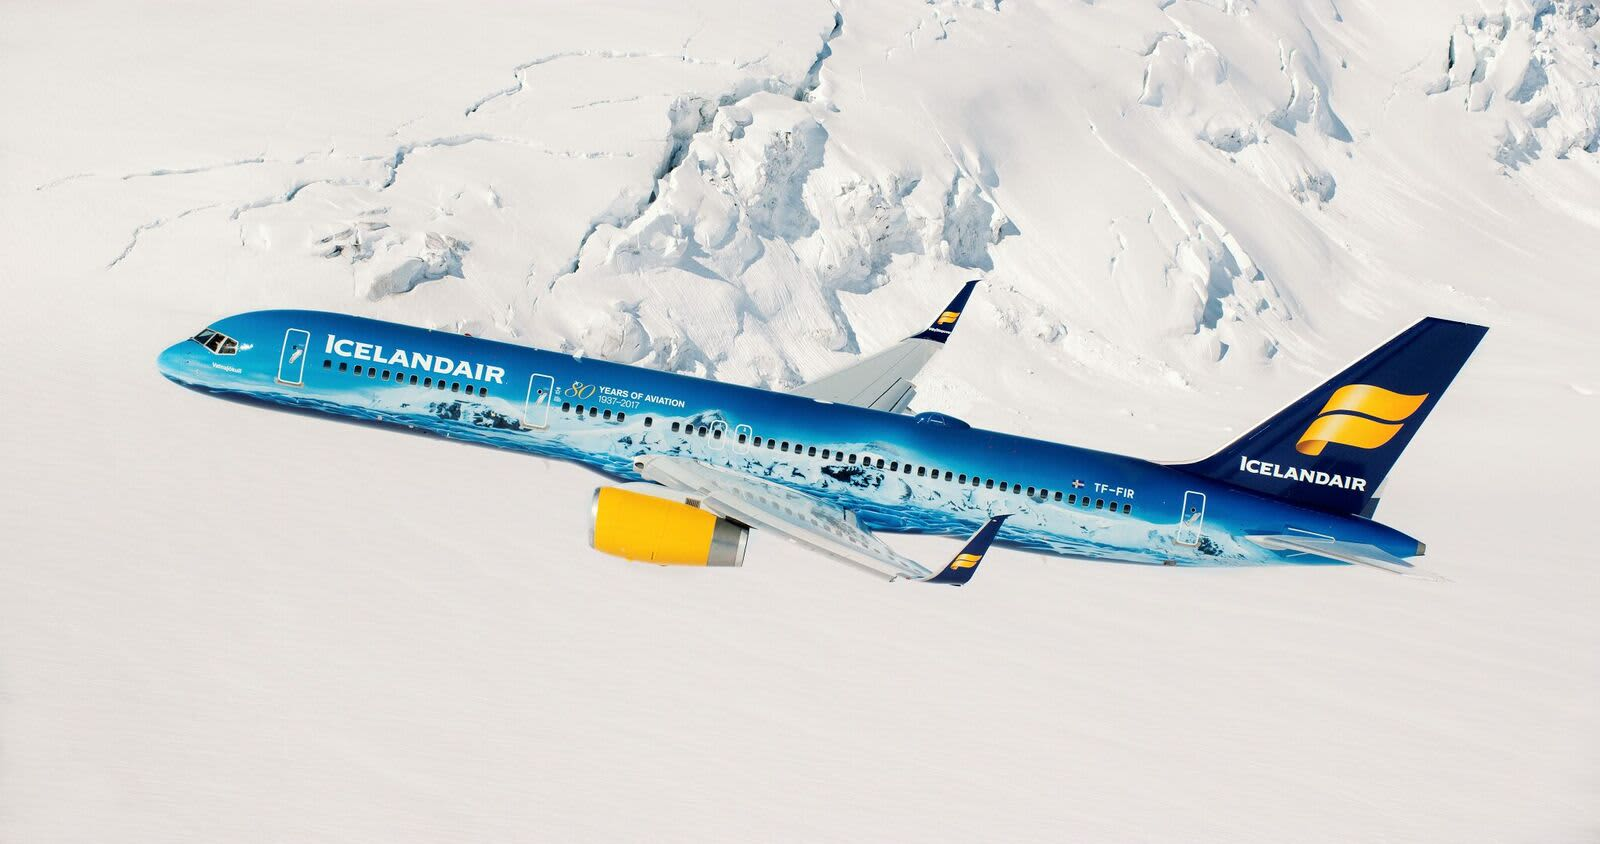 Icelandair Route Map on tacv route map, xtra airways route map, jetblue route map, airline route map, florida route map, delta airlines 757 seat map, union pacific railroad route map, casino express route map, xl airways route map, republic airways holdings route map, jfk airtrain route map, volaris route map, new jersey transit route map, lot polish route map, south african airways route map, tame route map, biman route map, flying tiger line route map,